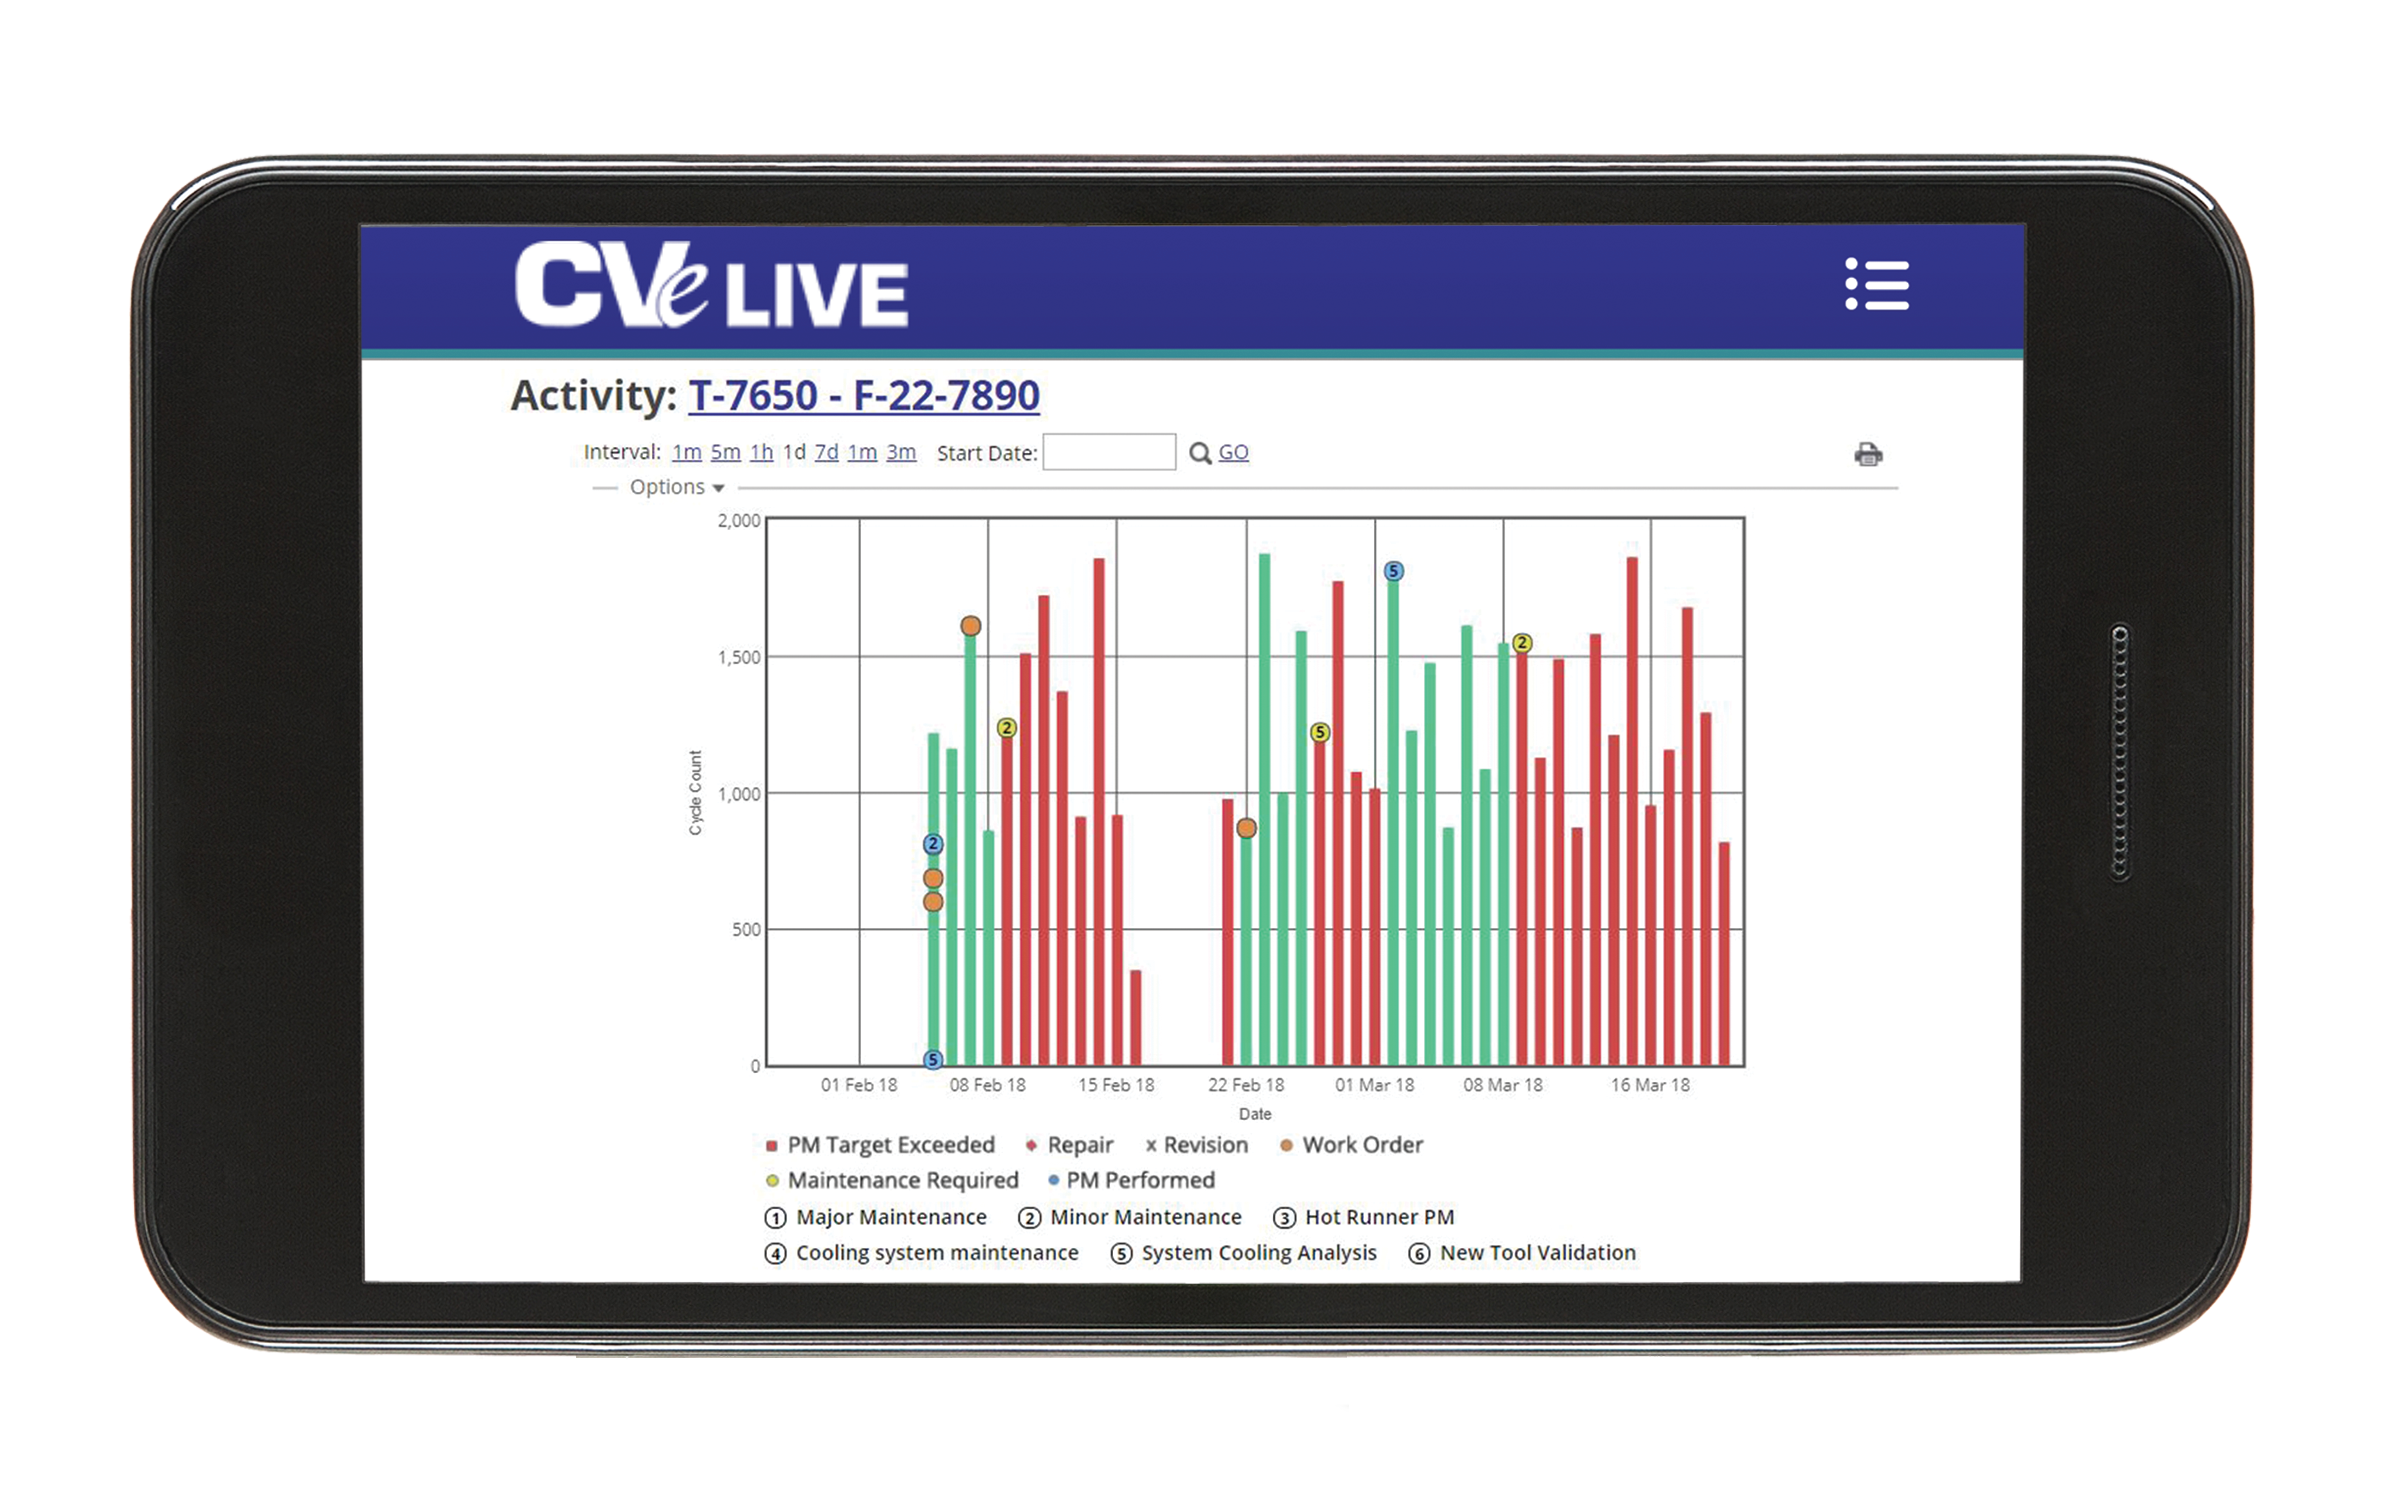 Progressive Components' CVe Live v3 screen shot.